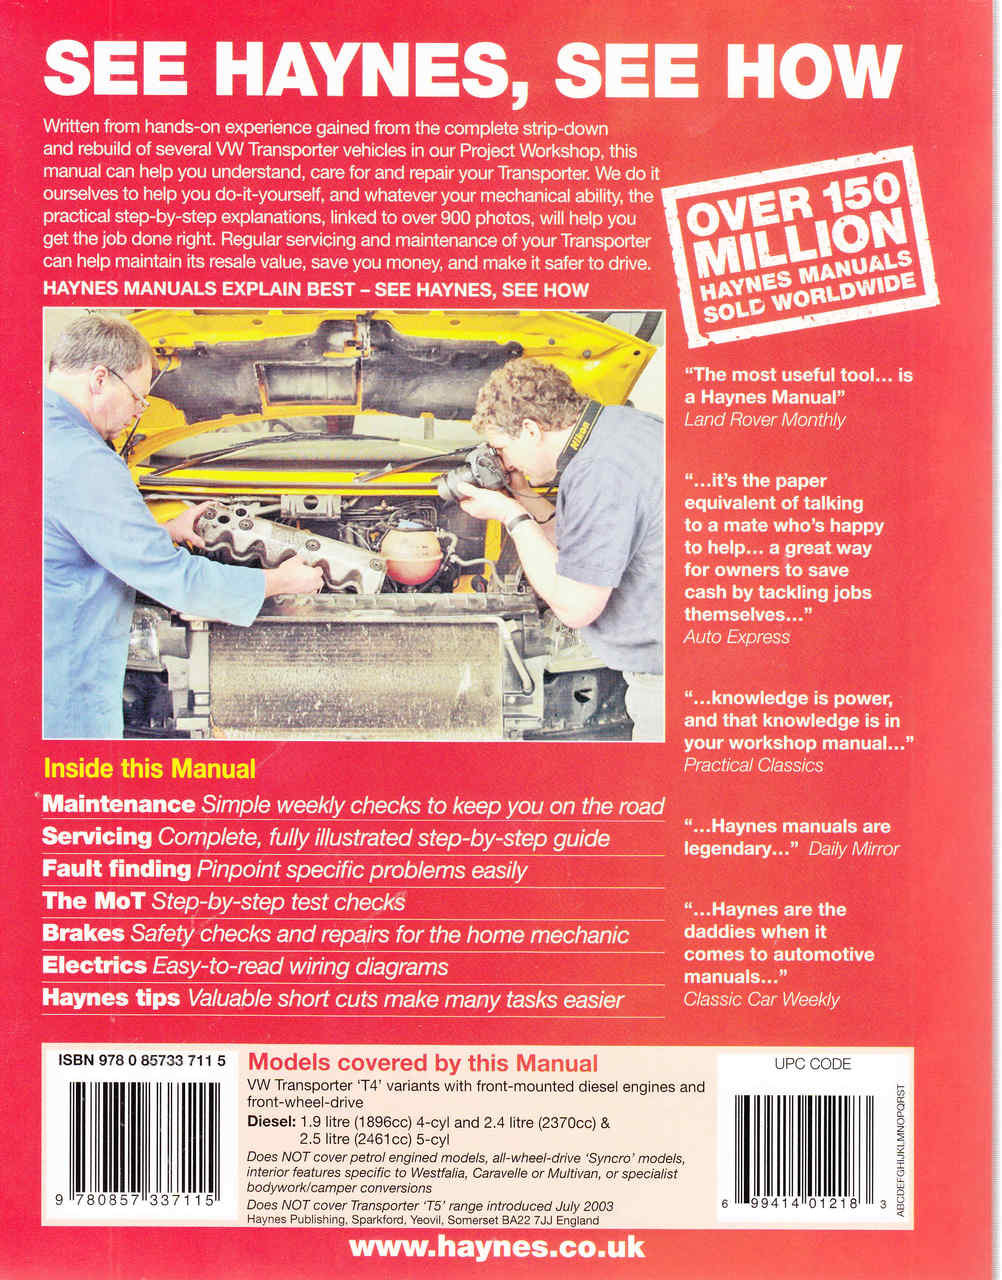 medium resolution of  vw transporter t4 1990 to 2003 diesel workshop manual back